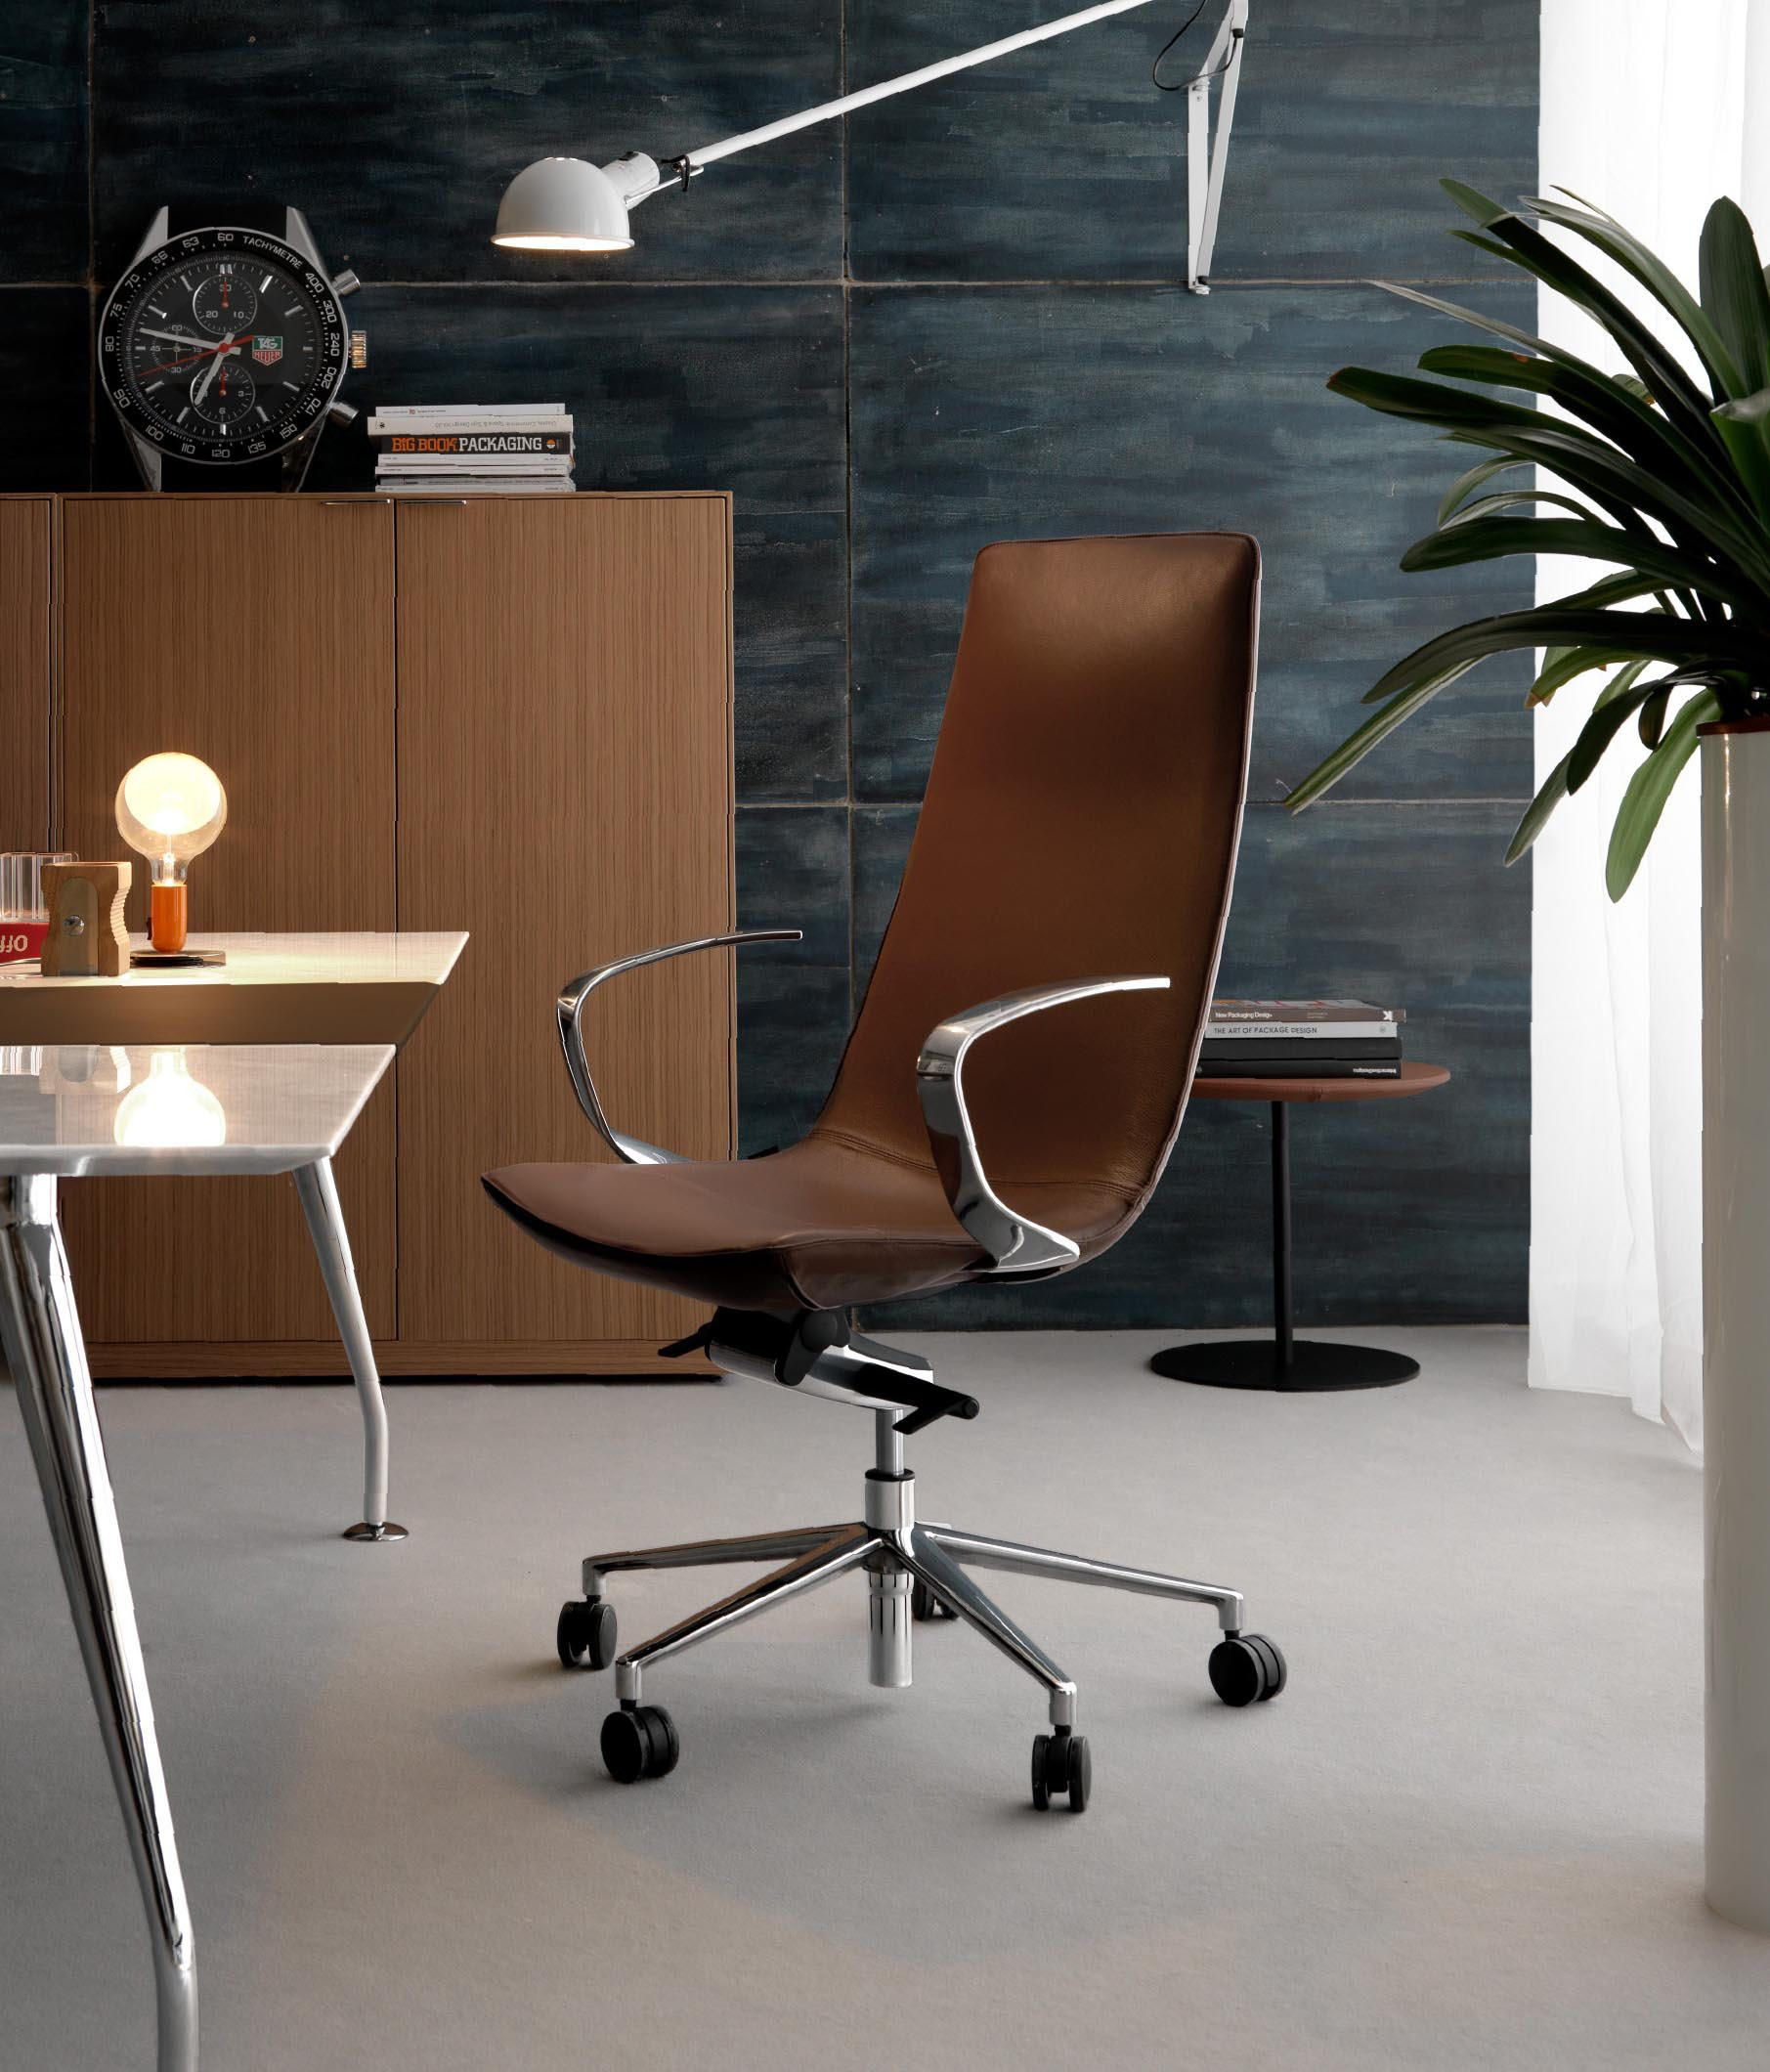 Pin By Wade Egnor On Offices Office Chair Design Home Office Chairs Best Office Chair